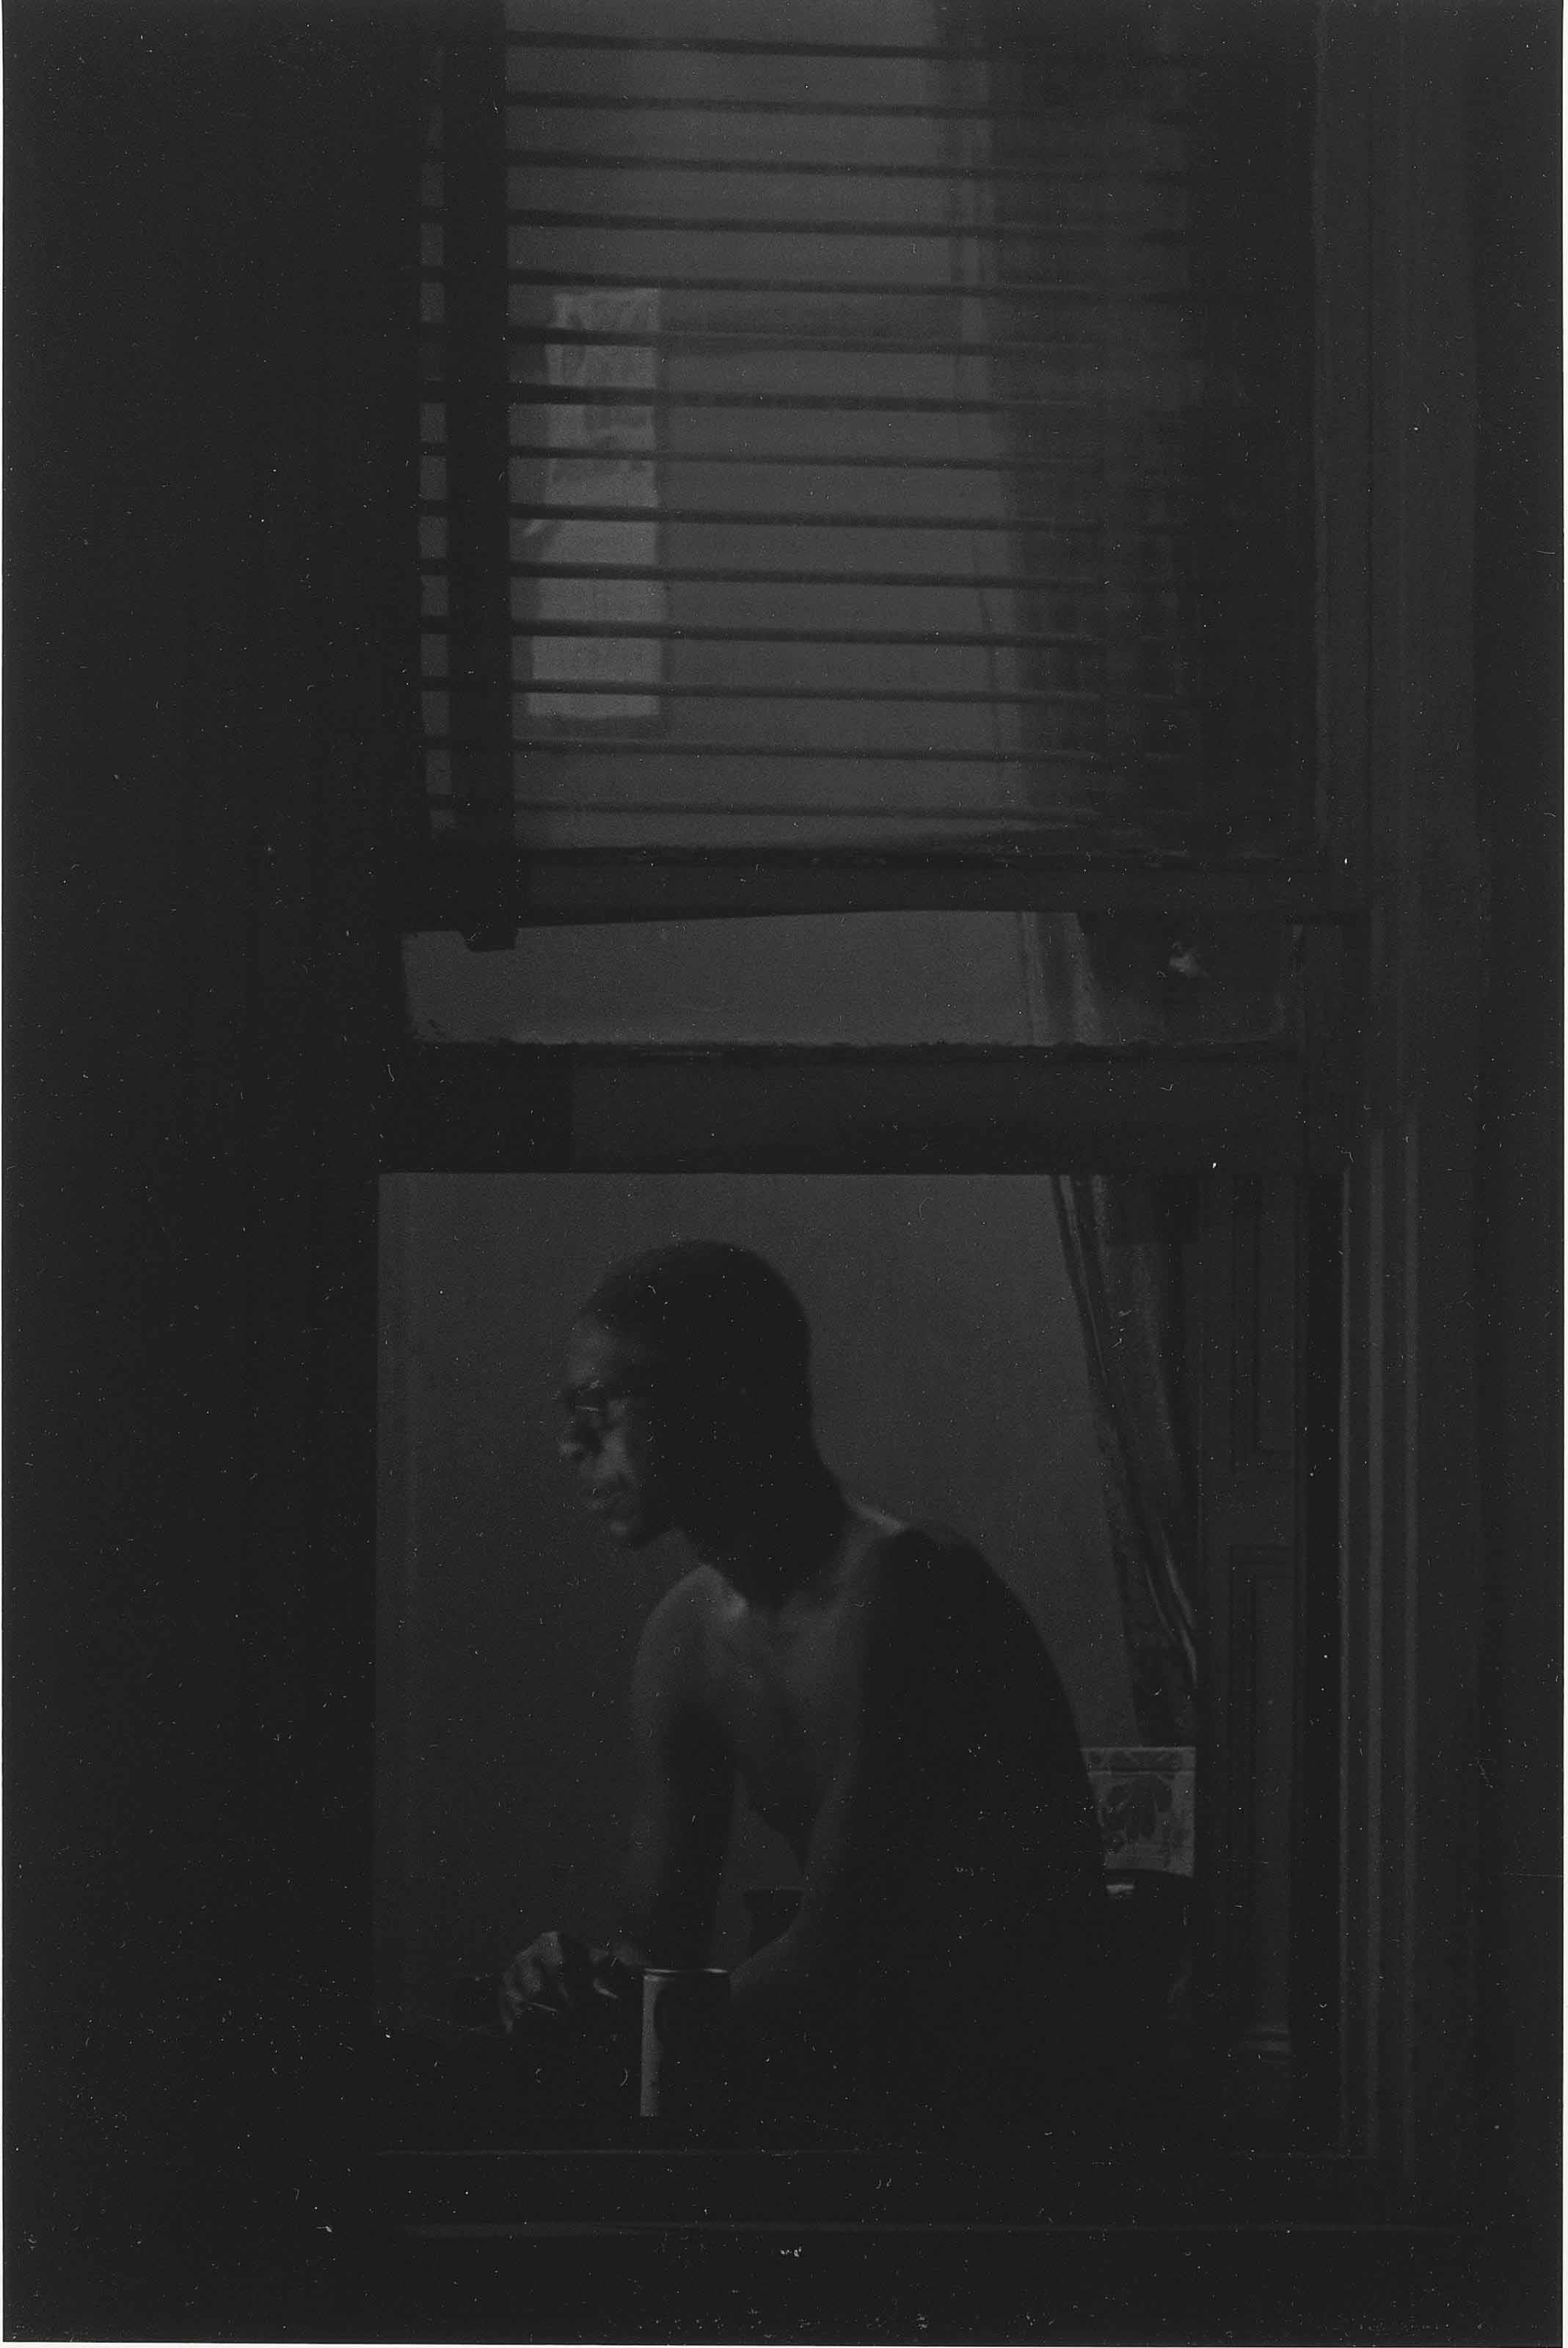 Man in Window, New York, 1978